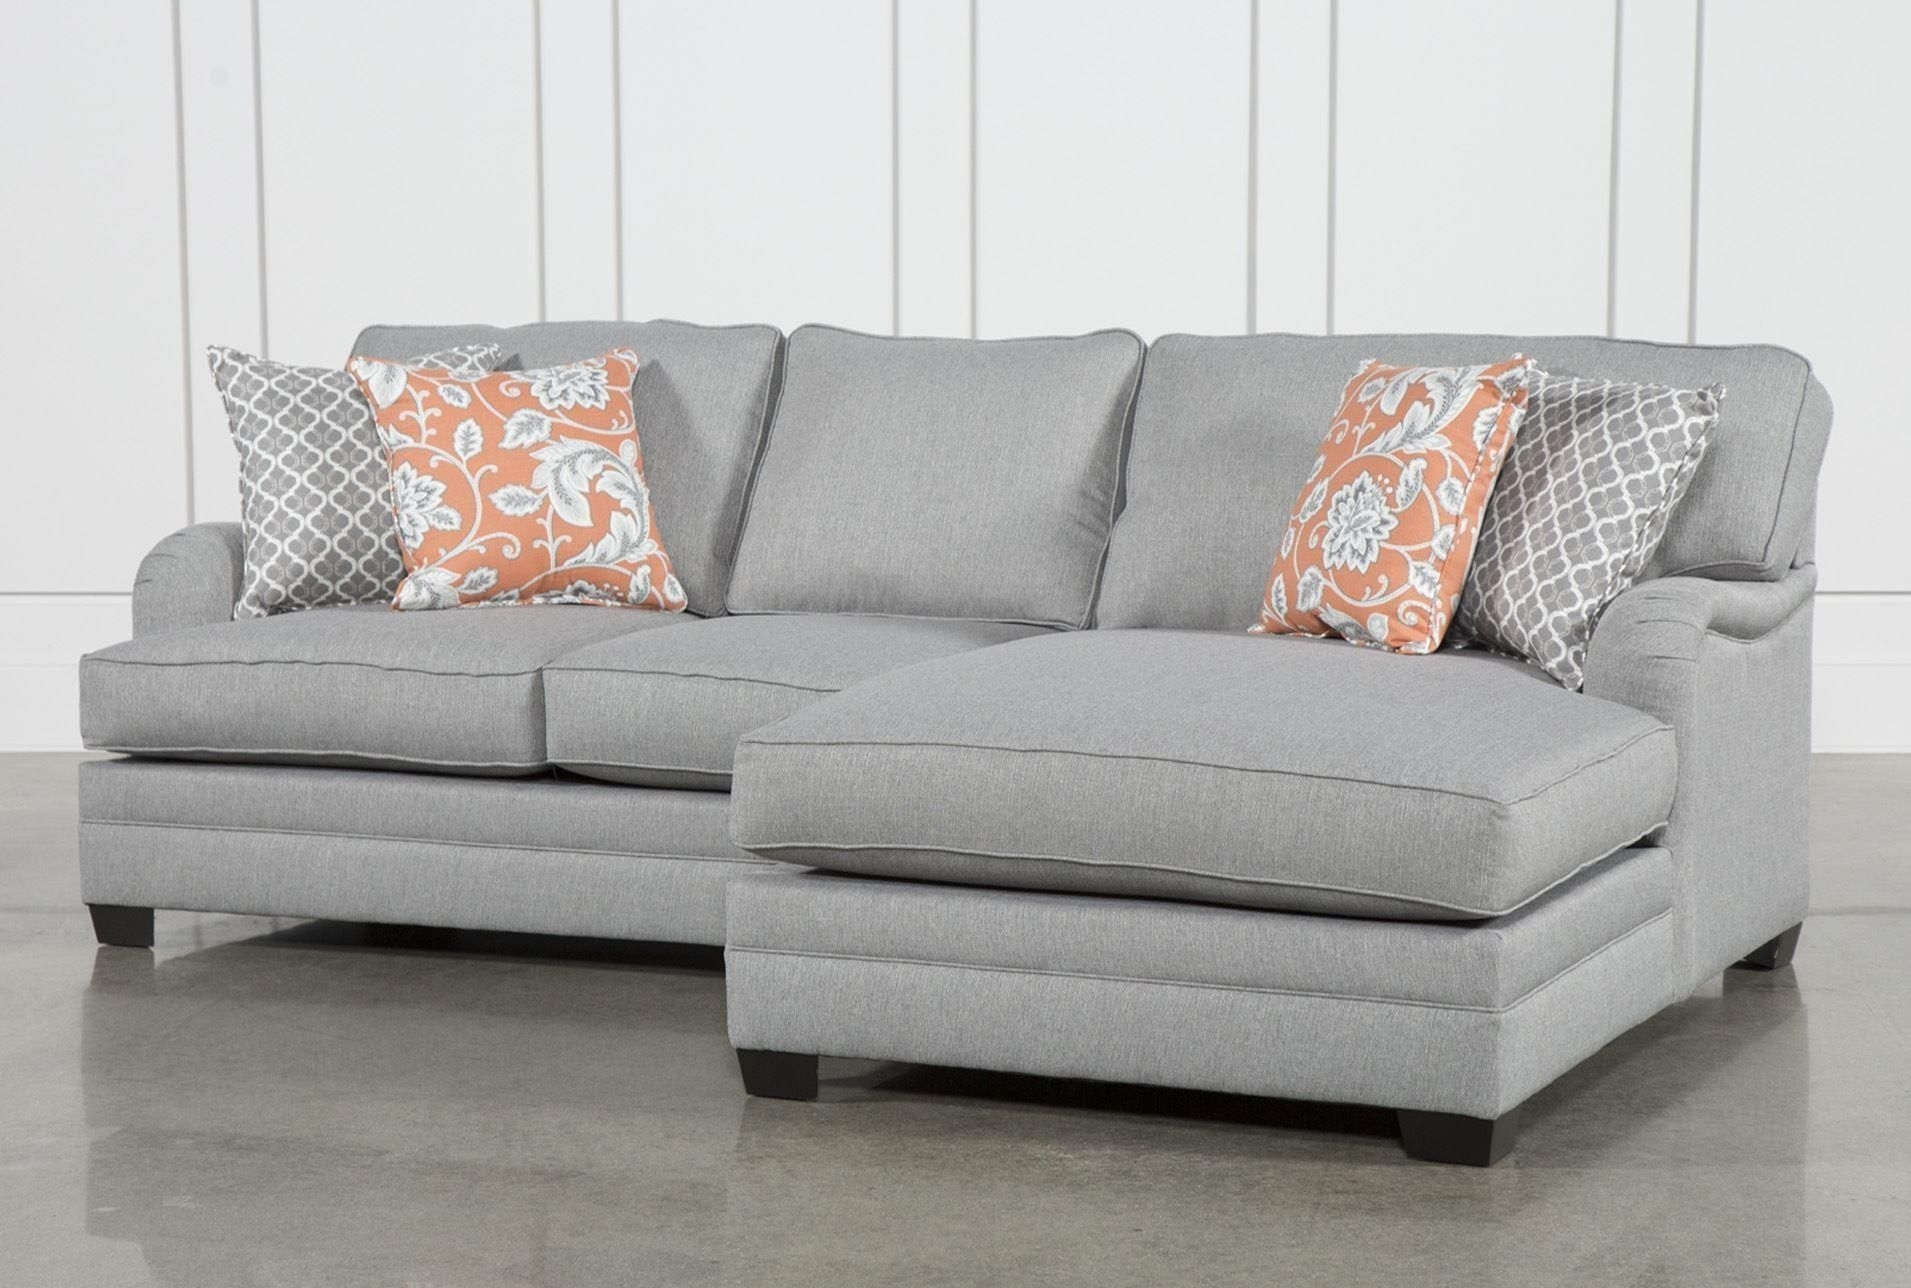 Marissa 2 Piece Sectional W/raf Chaise | Oakdell House | Pinterest For Egan Ii Cement Sofa Sectionals With Reversible Chaise (View 3 of 25)